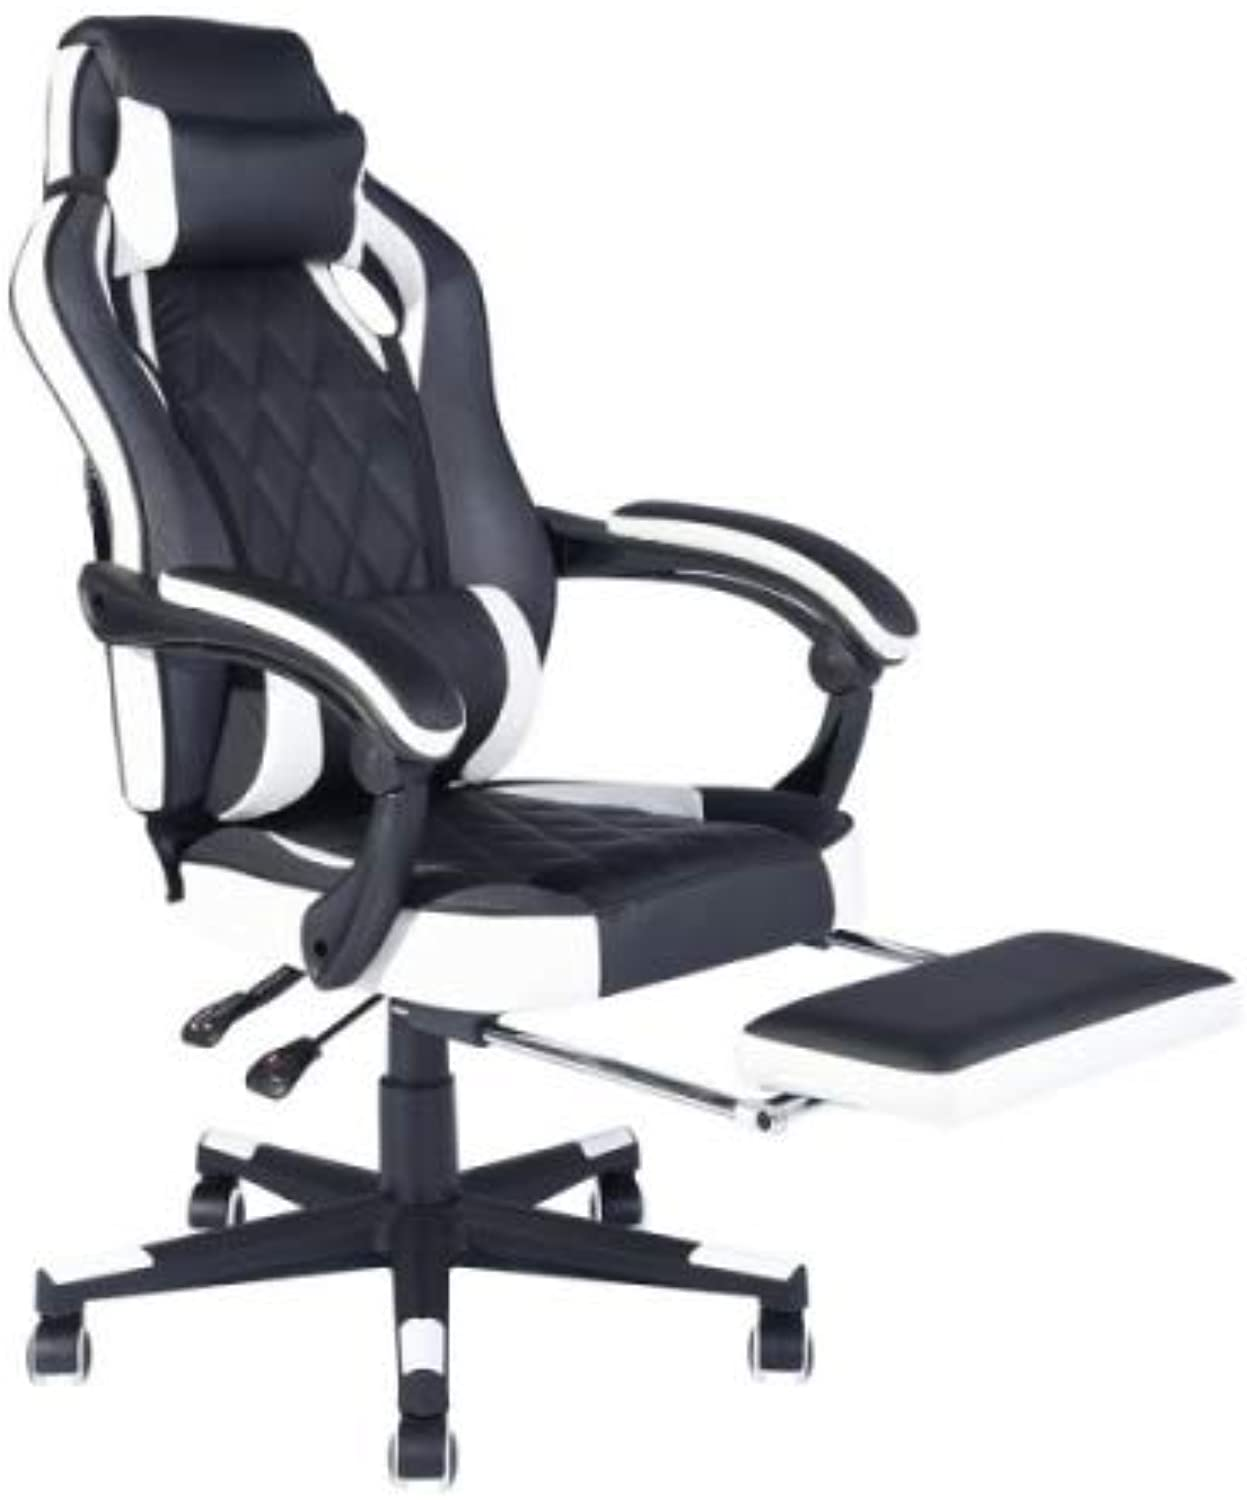 ZF Collections ACE Gaming Chair with Footrest Ergonomic Style Office Chair